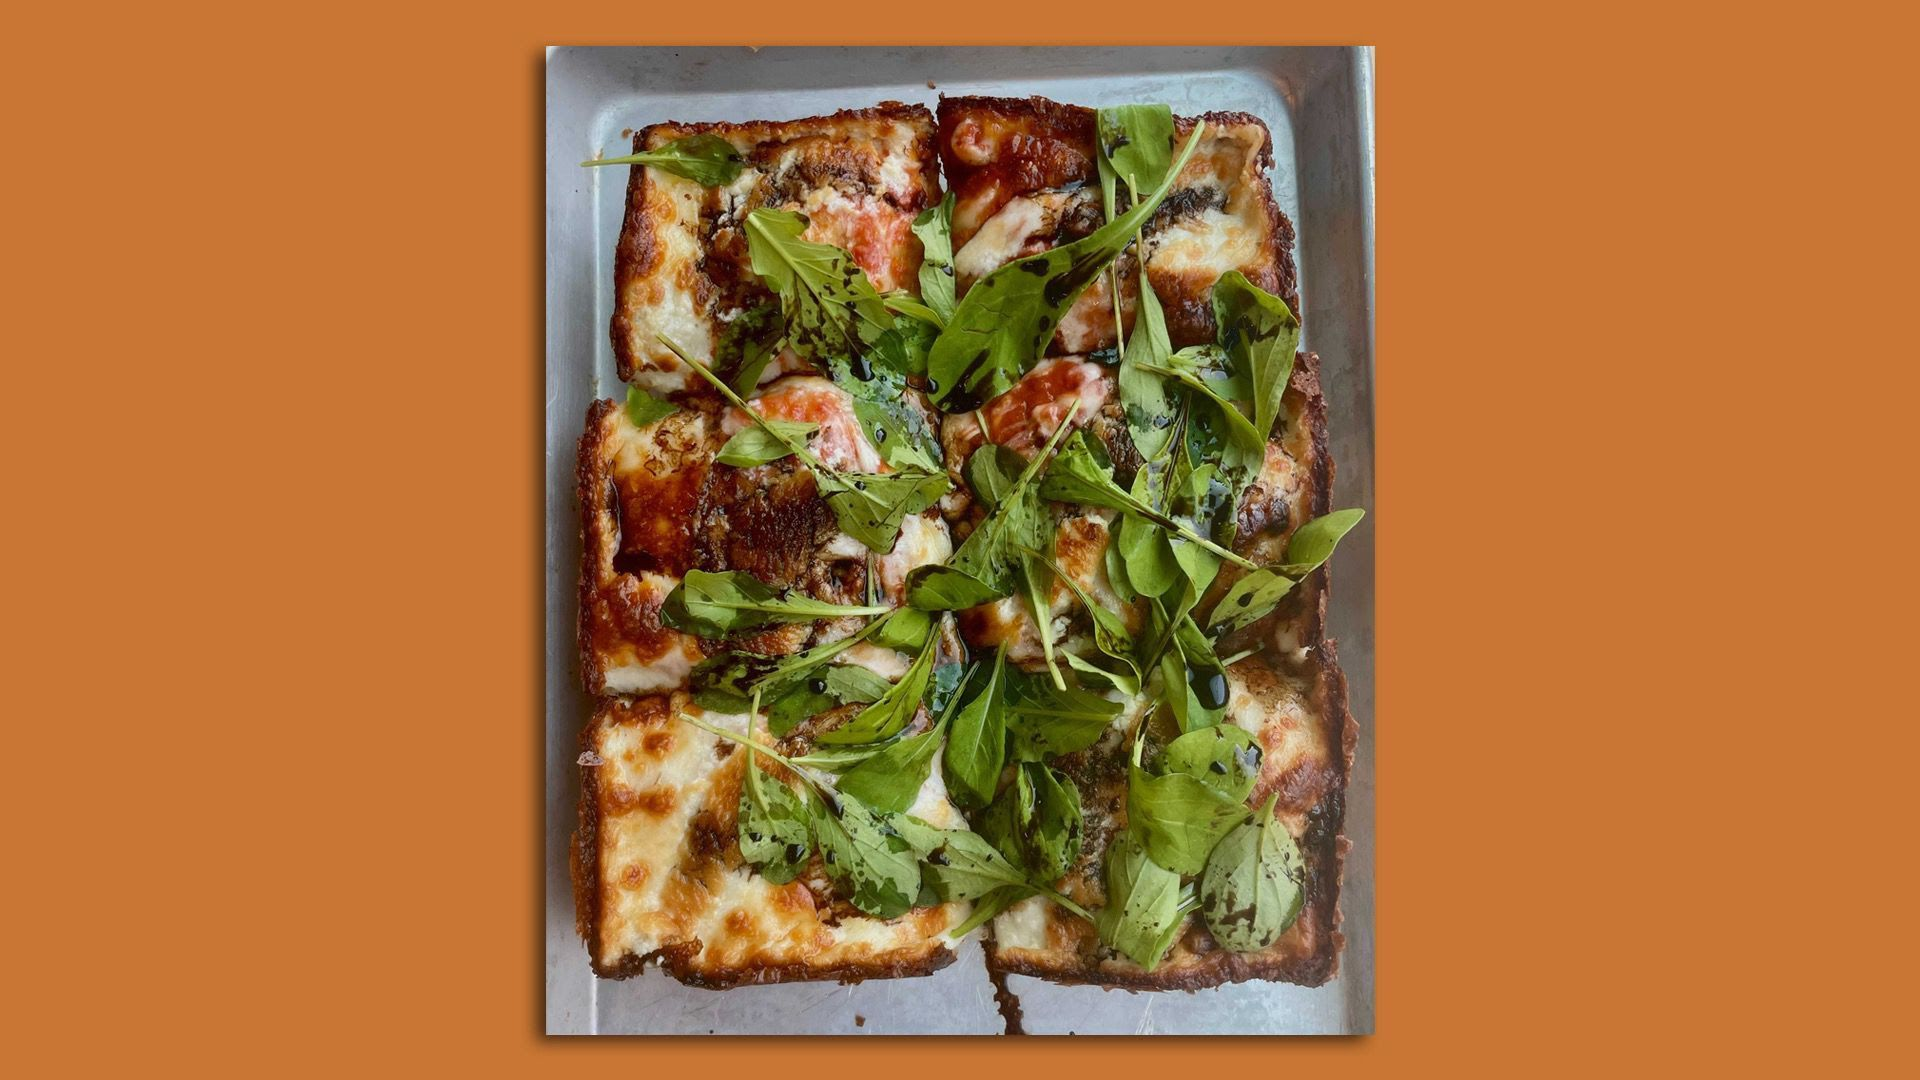 A Detroit-style pizza topped with arugula from Minneapolis' Wrecktangle Pizza.